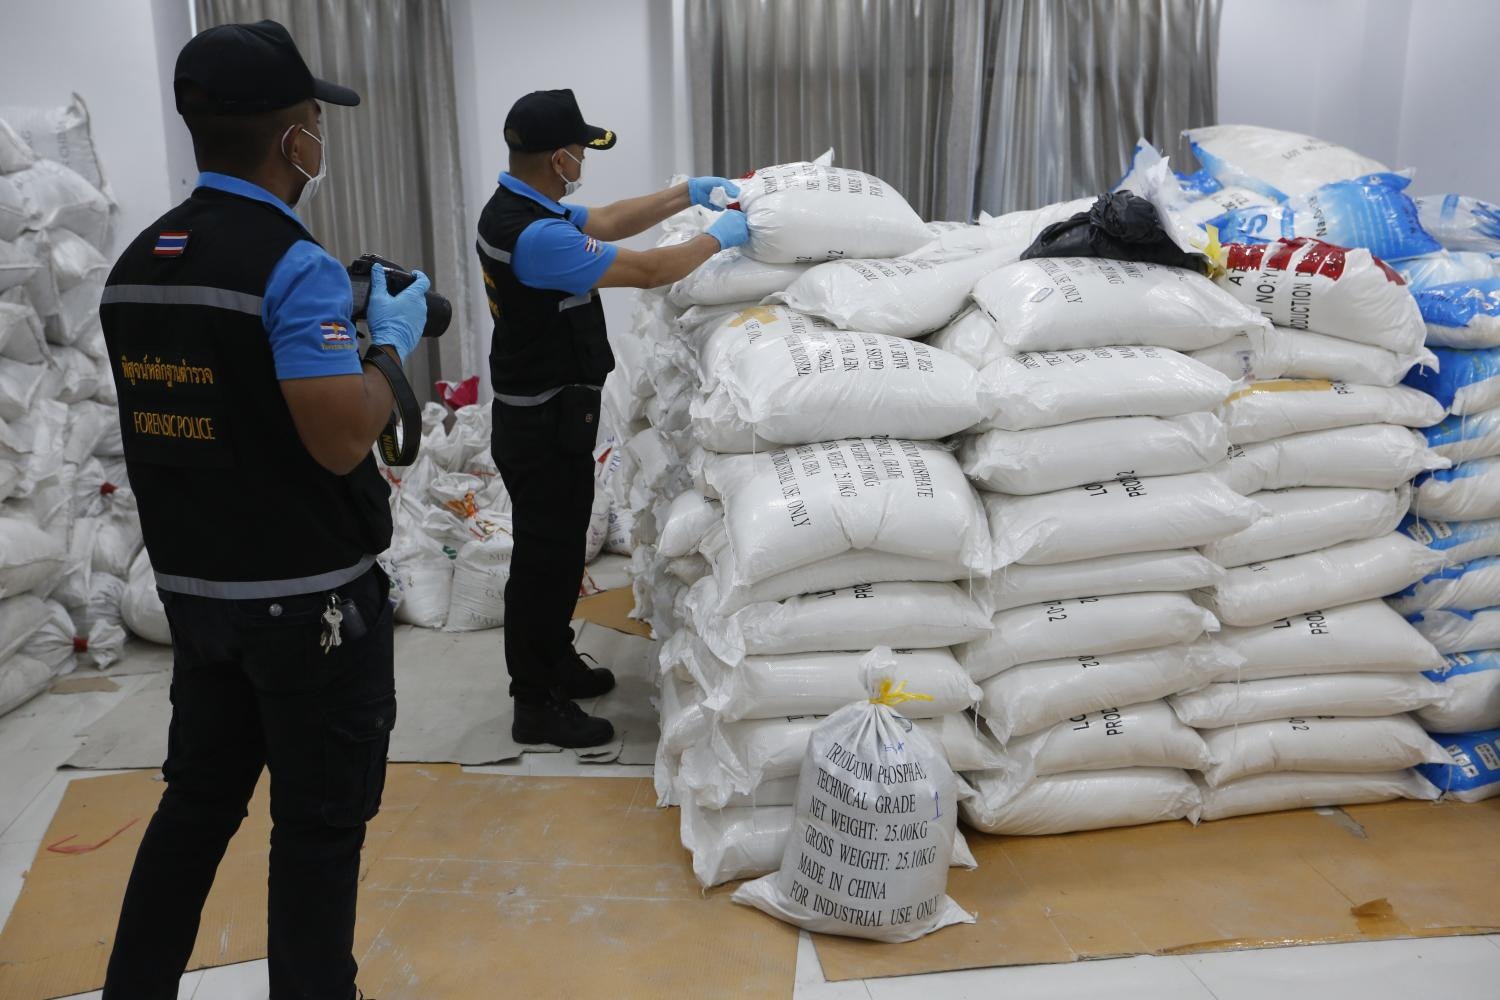 Police officers check sacks at a warehouse in Chachoengsao. The substances turned out to be trisodium phosphate.